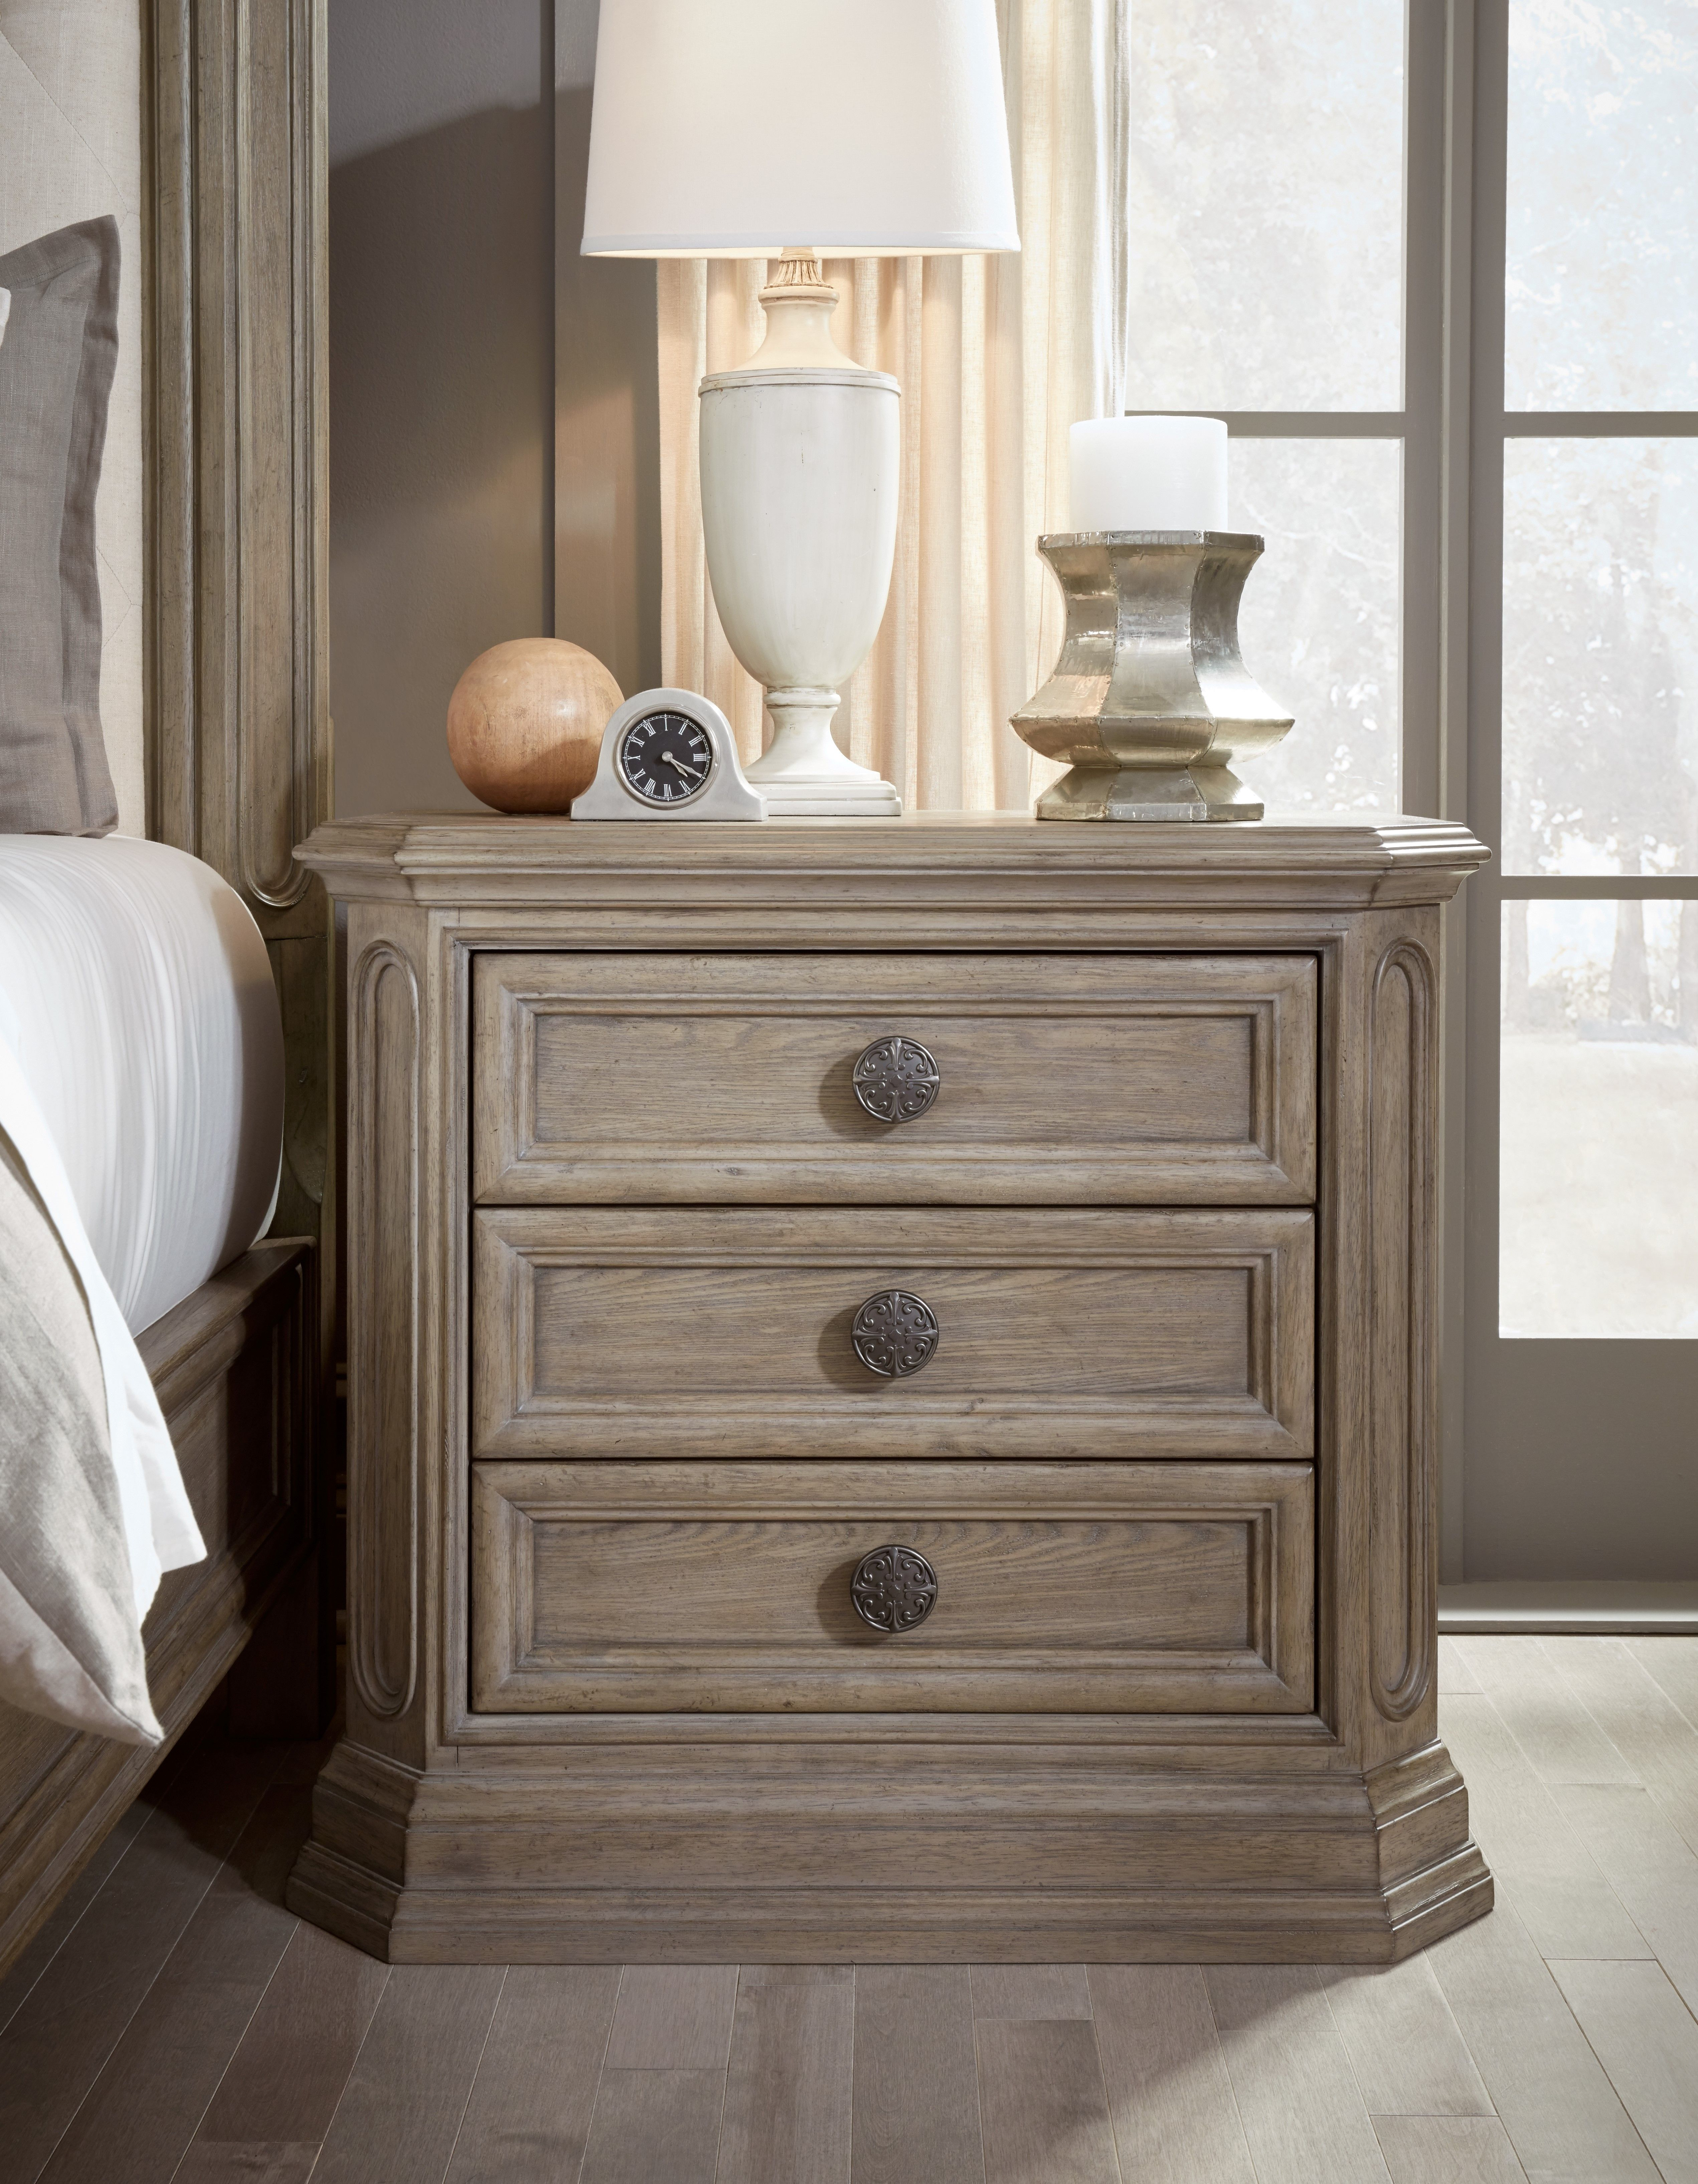 Manor house bedside chest legacy classic furniture furniture homefurniture homedecor bedroom bedroomfurniture classicstyle traditionalstyle